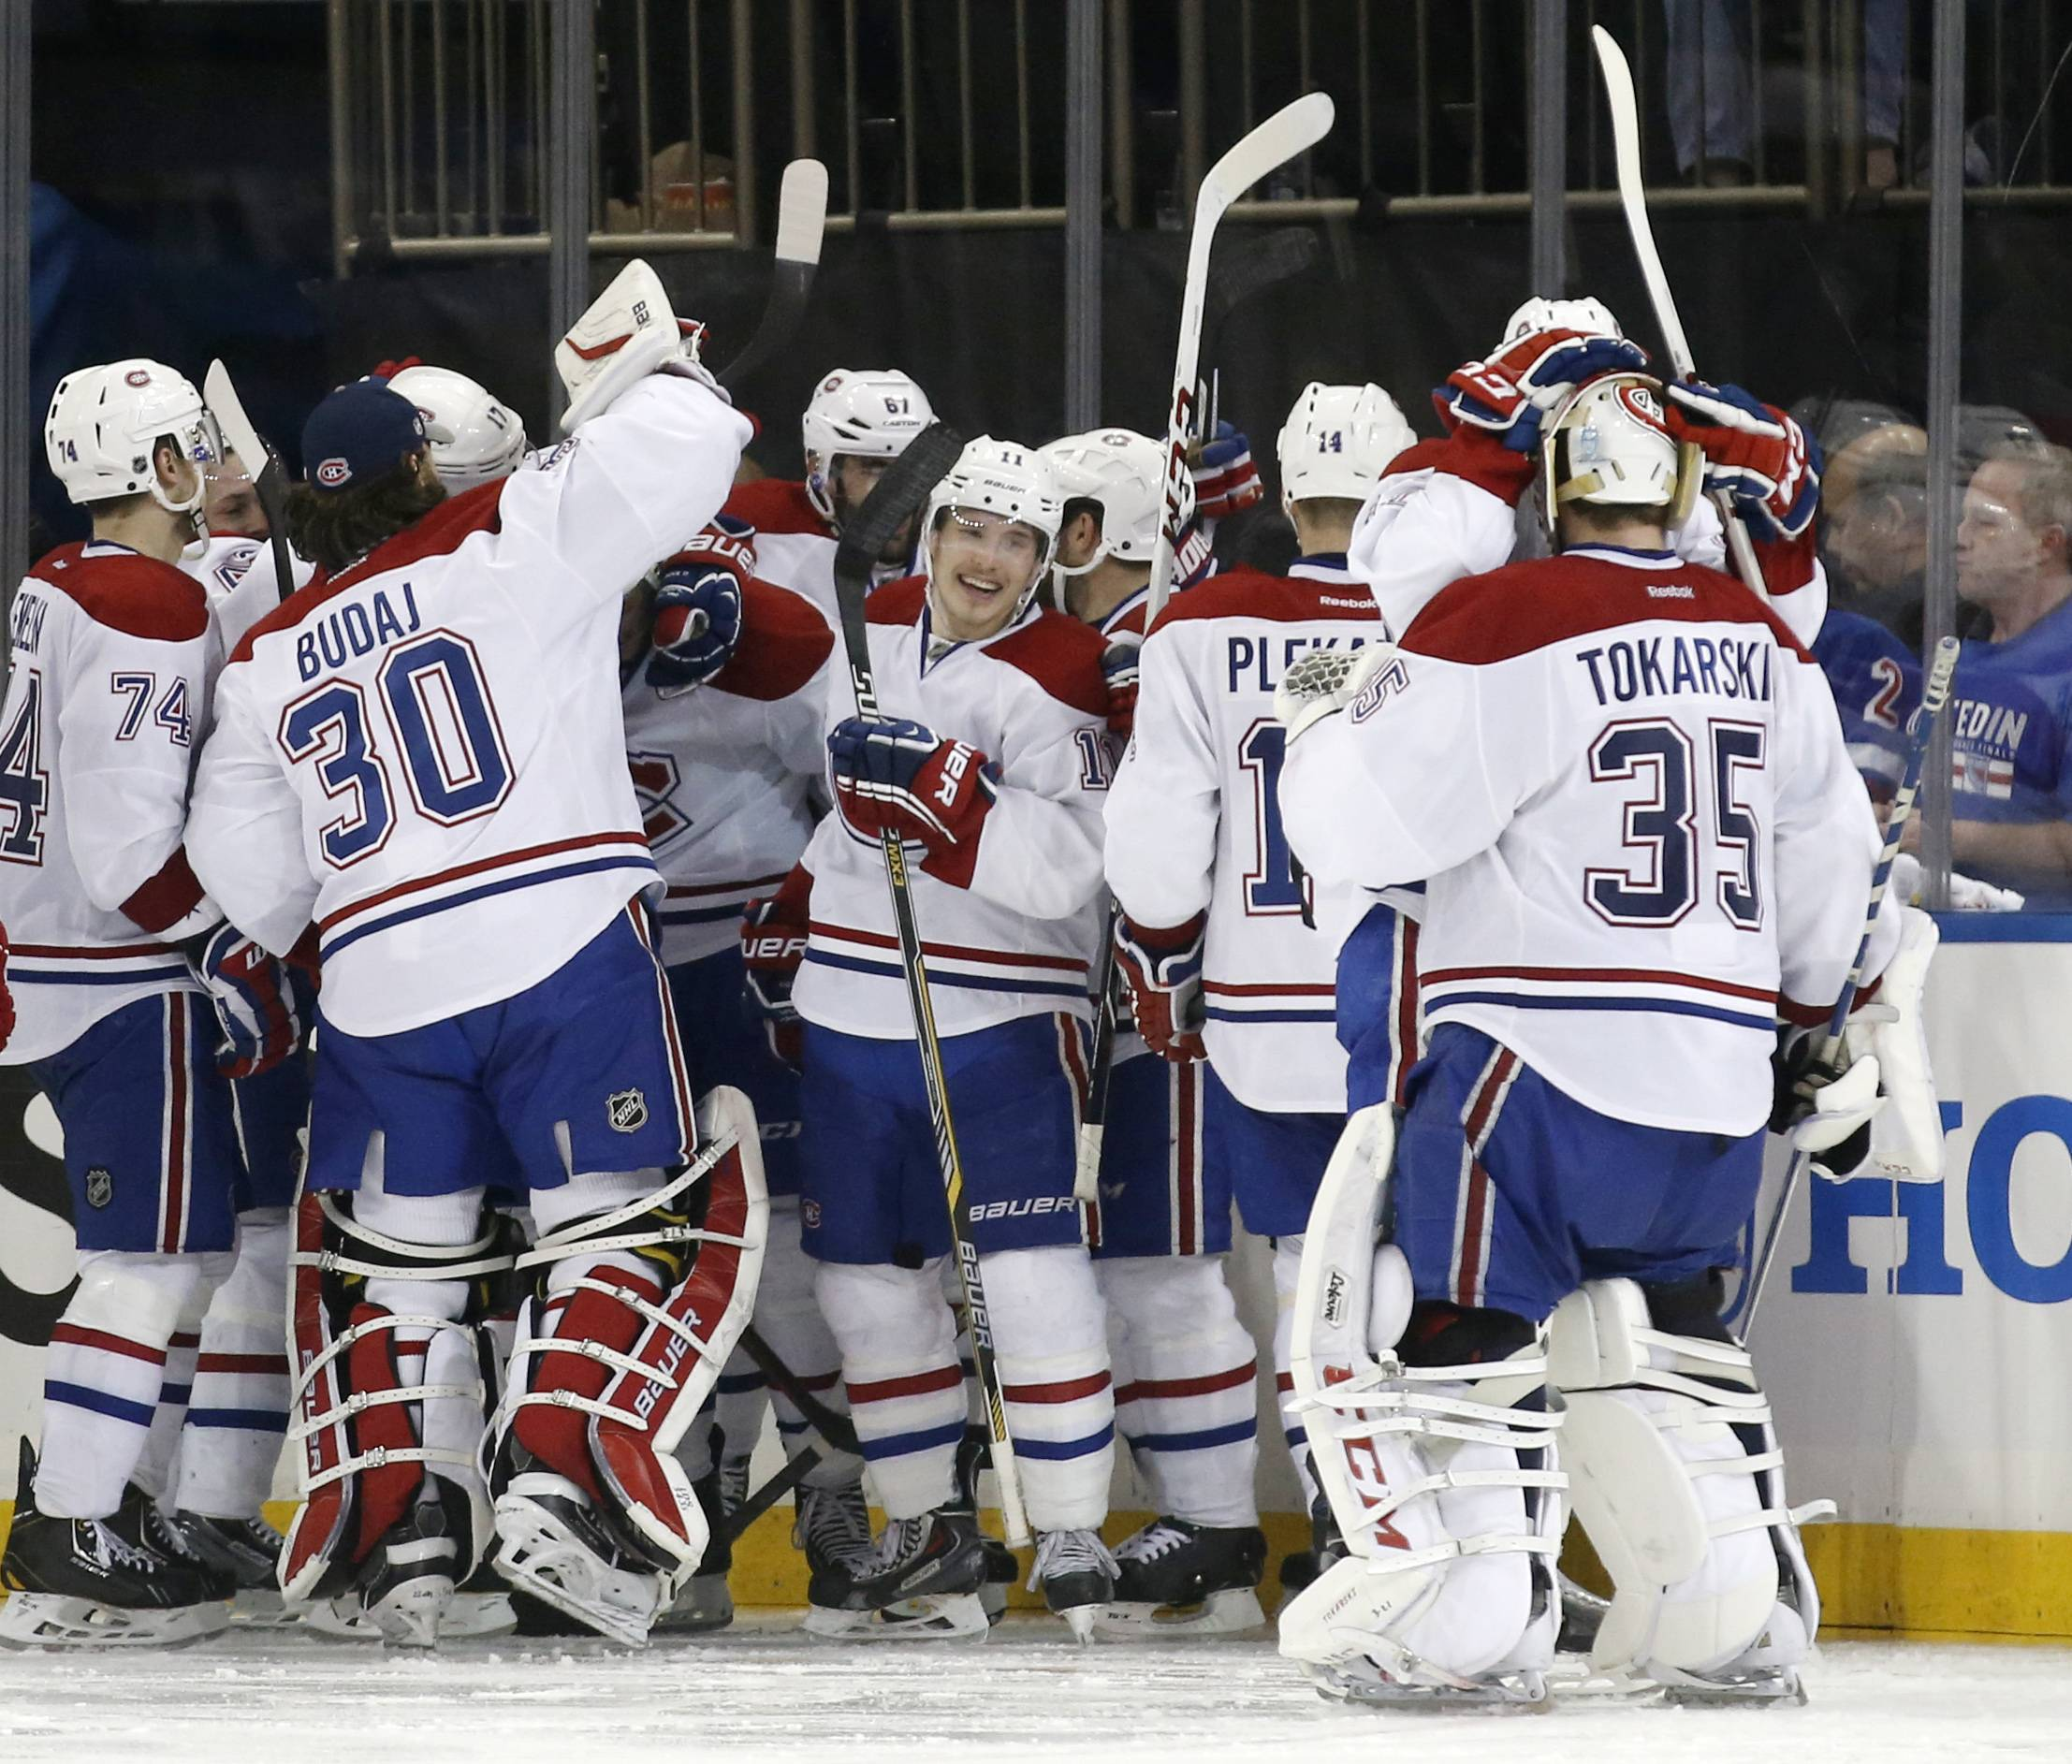 The Montreal Canadiens celebrate after defeating the New York Rangers 3-2 in overtime in Game 3 of the NHL hockey Stanley Cup playoffs Eastern Conference finals, Thursday, May 22, 2014, in New York.